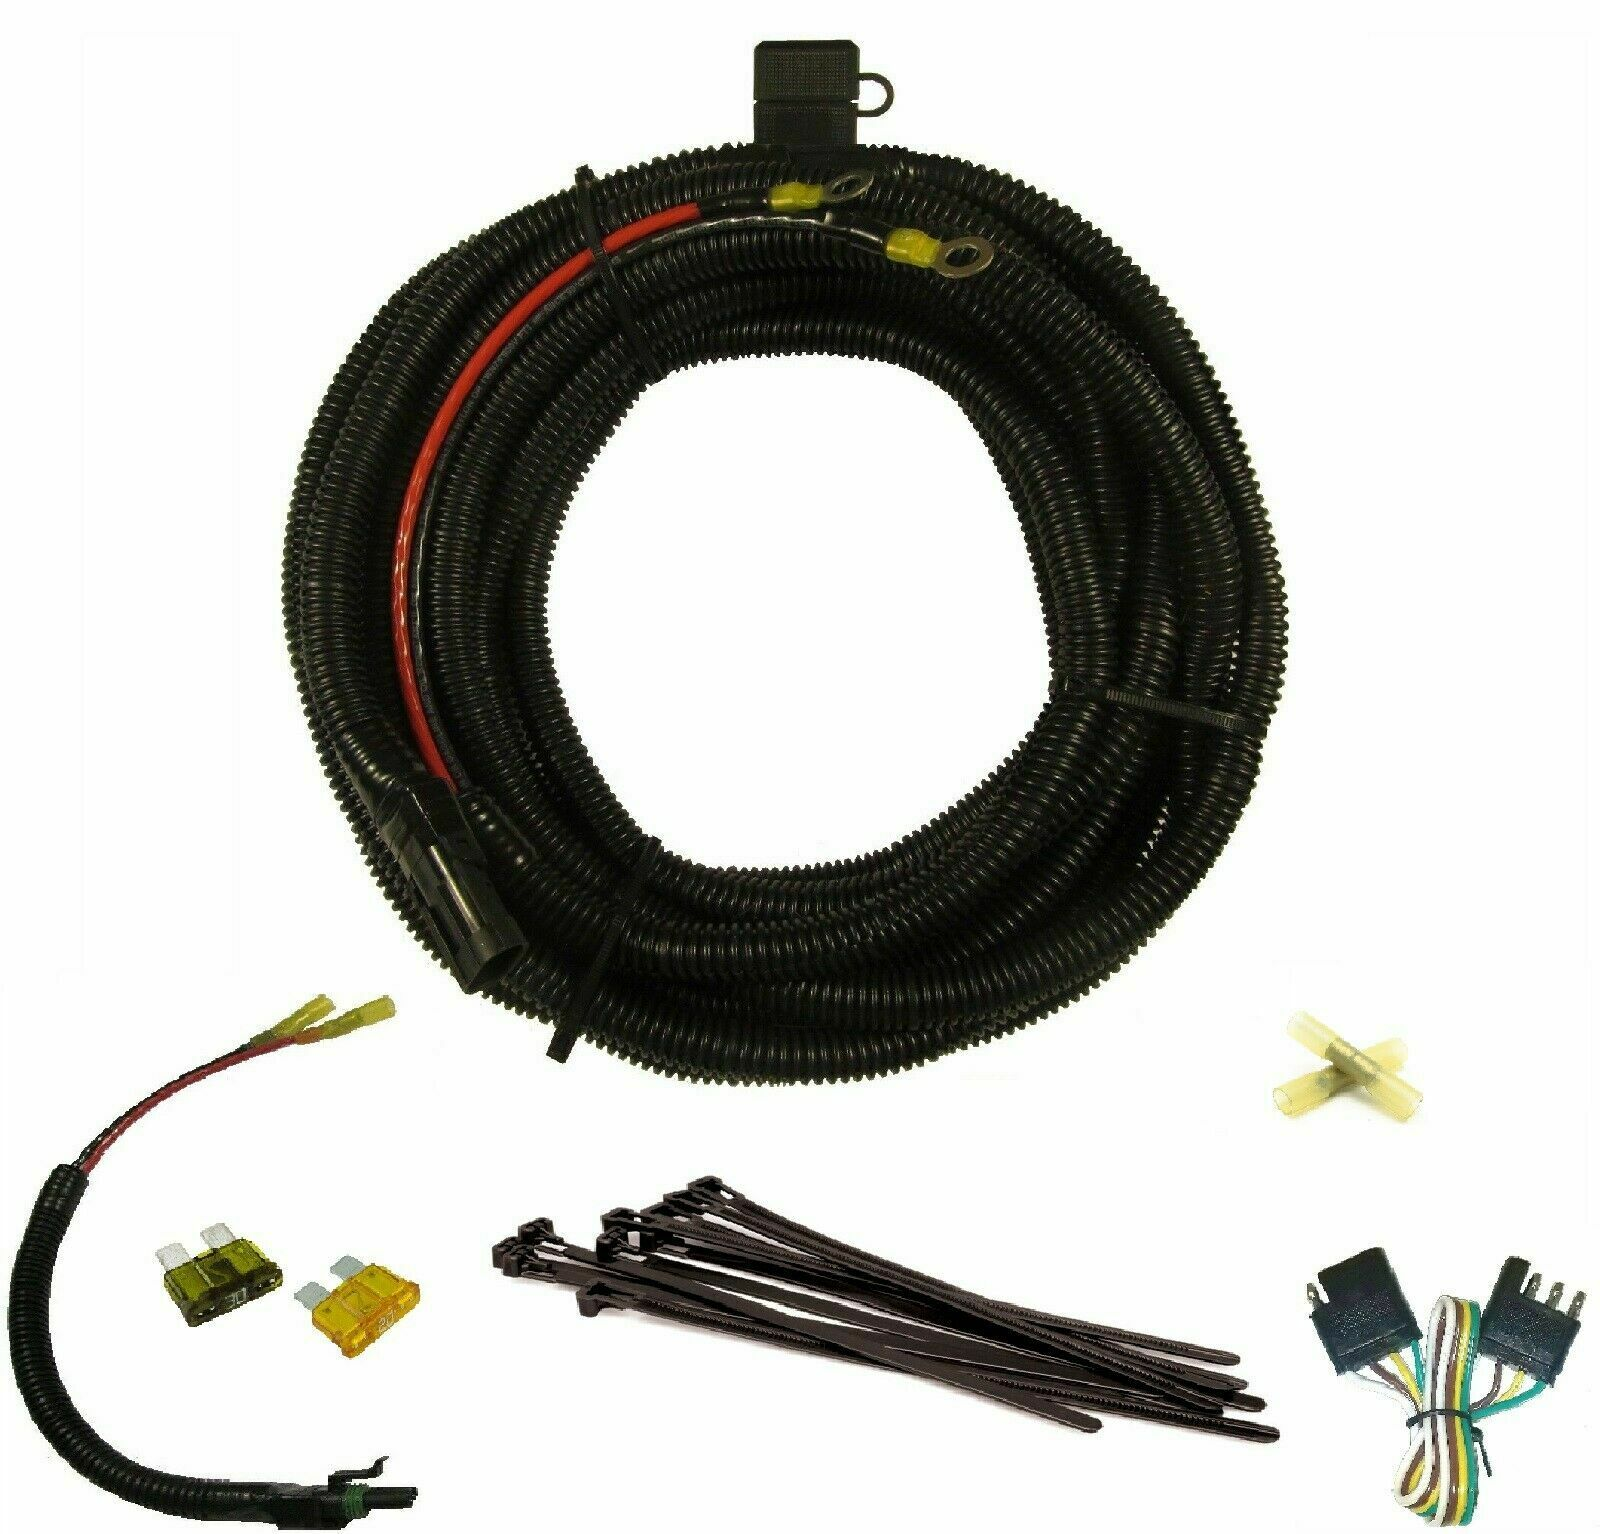 hamar electric lift battery cable wiring harness 25ft 10 gauge harmar mobility dealers harmar al500 wiring harness #5